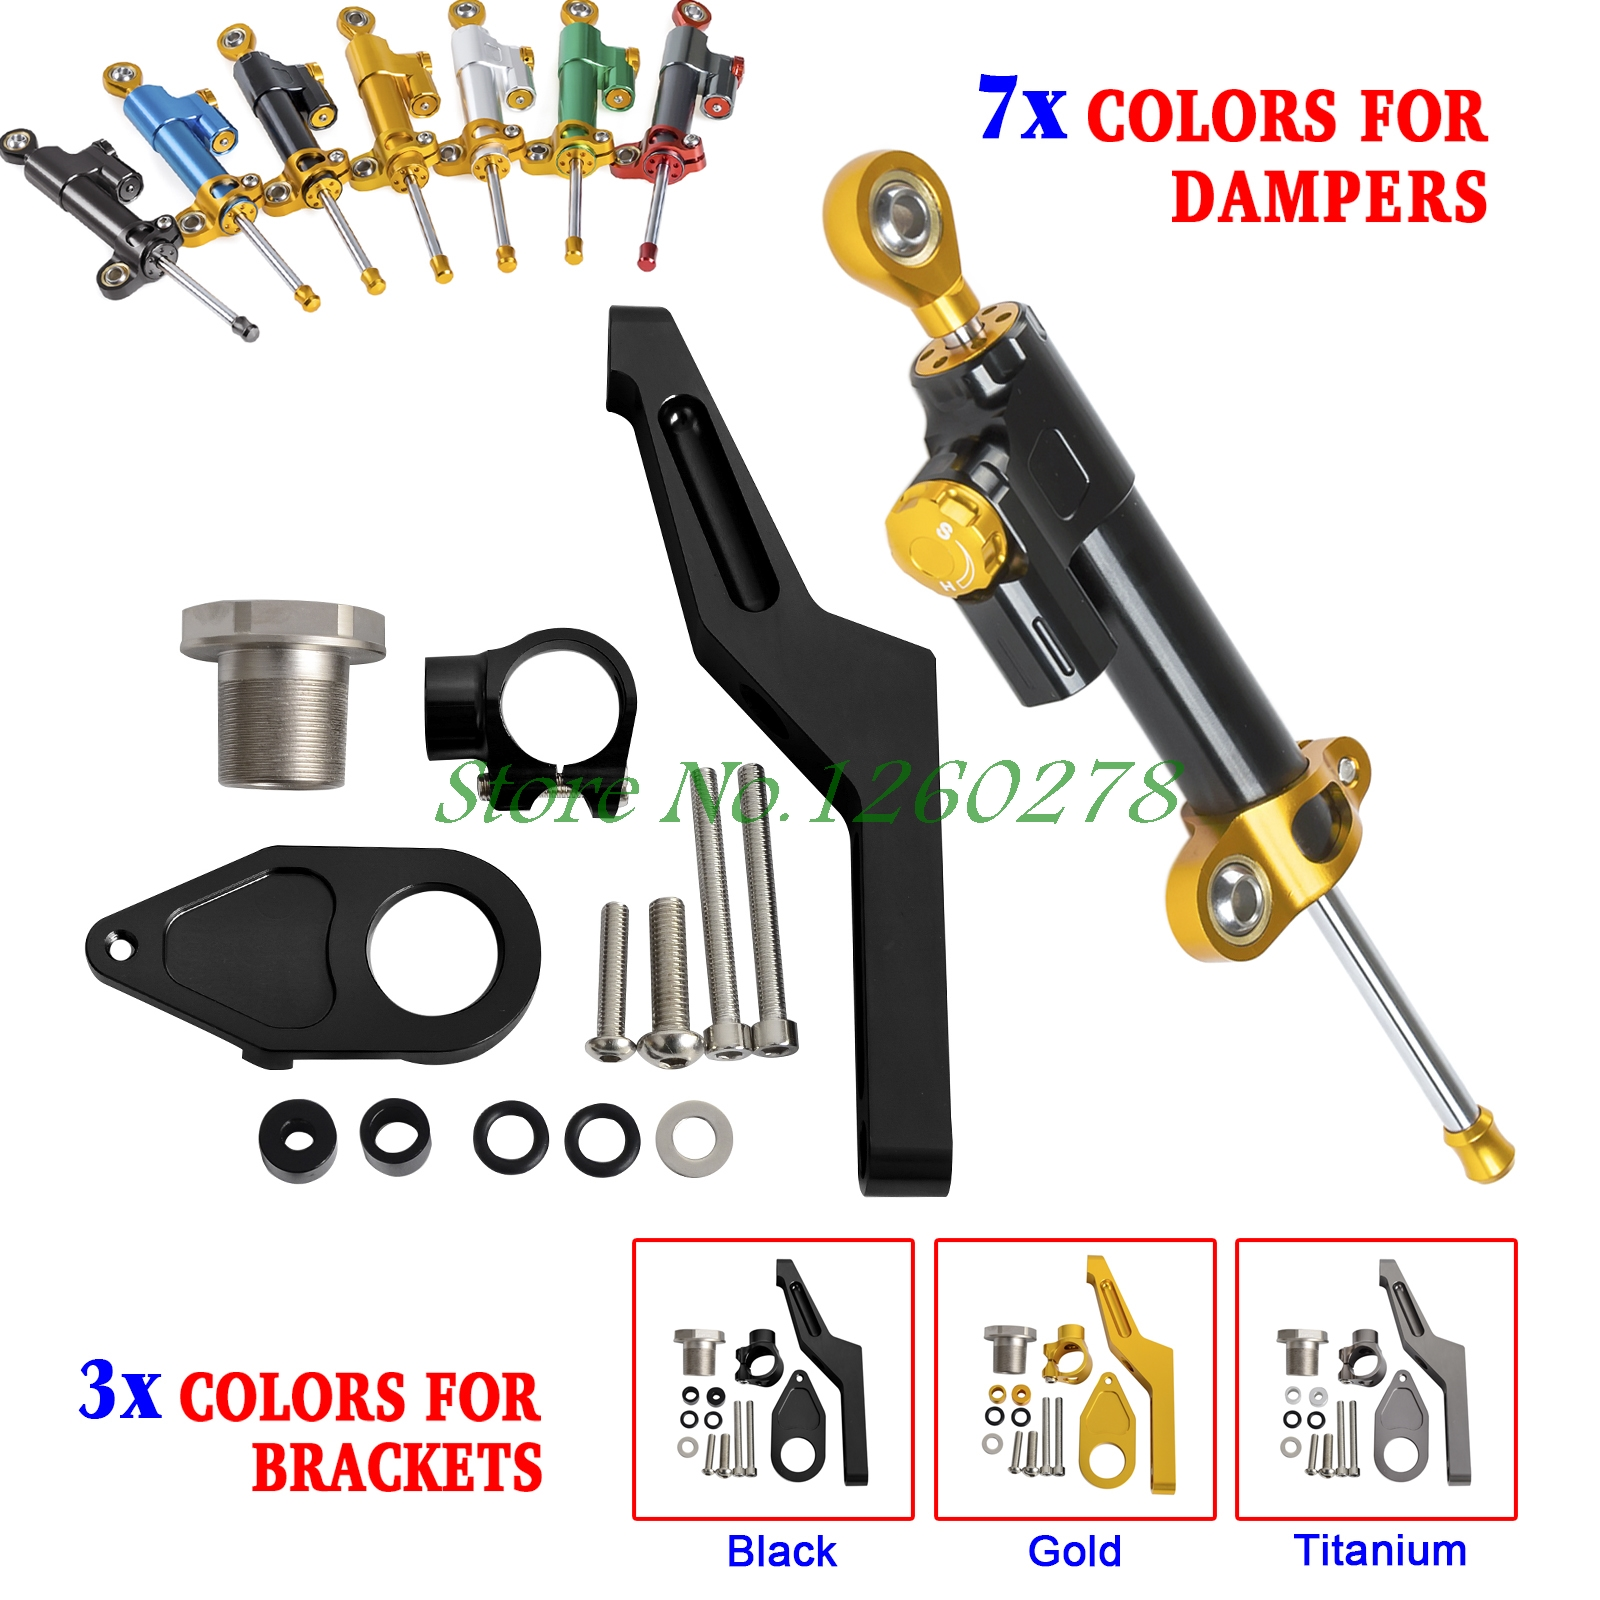 Motorcycle CNC Steering Damper Stabilizer & Bracket For Kawasaki Ninja ZX-6R/ABS ZX636 2013 2014 2015 2016 steering damper stabilizer bracket mounting holder for kawasaki ninja zx6r zx 6r 2009 2016 2010 2015 gold